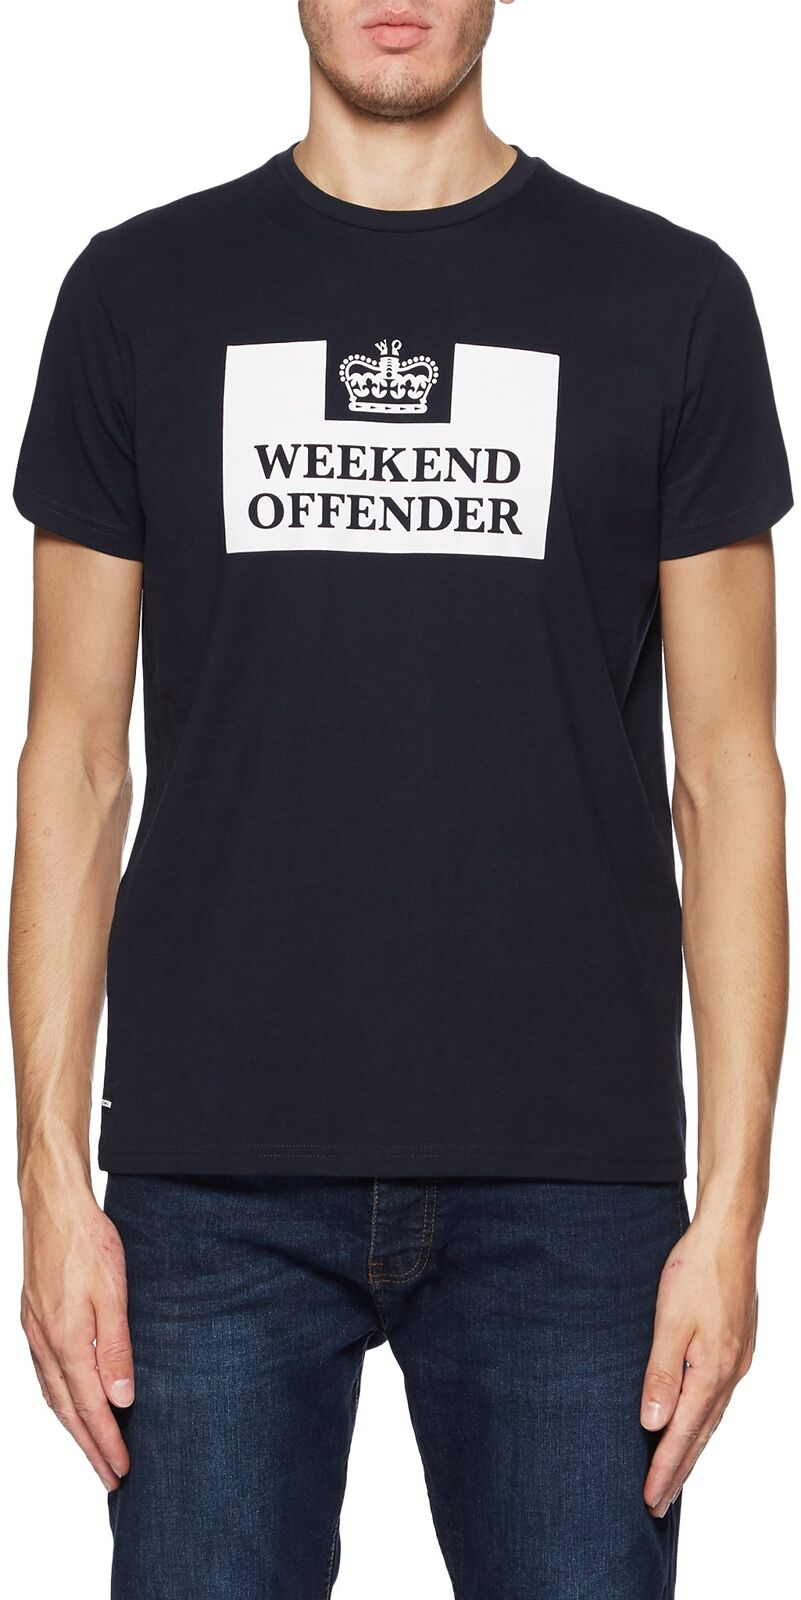 Weekend Offender Prison Classic T-Shirt Navy